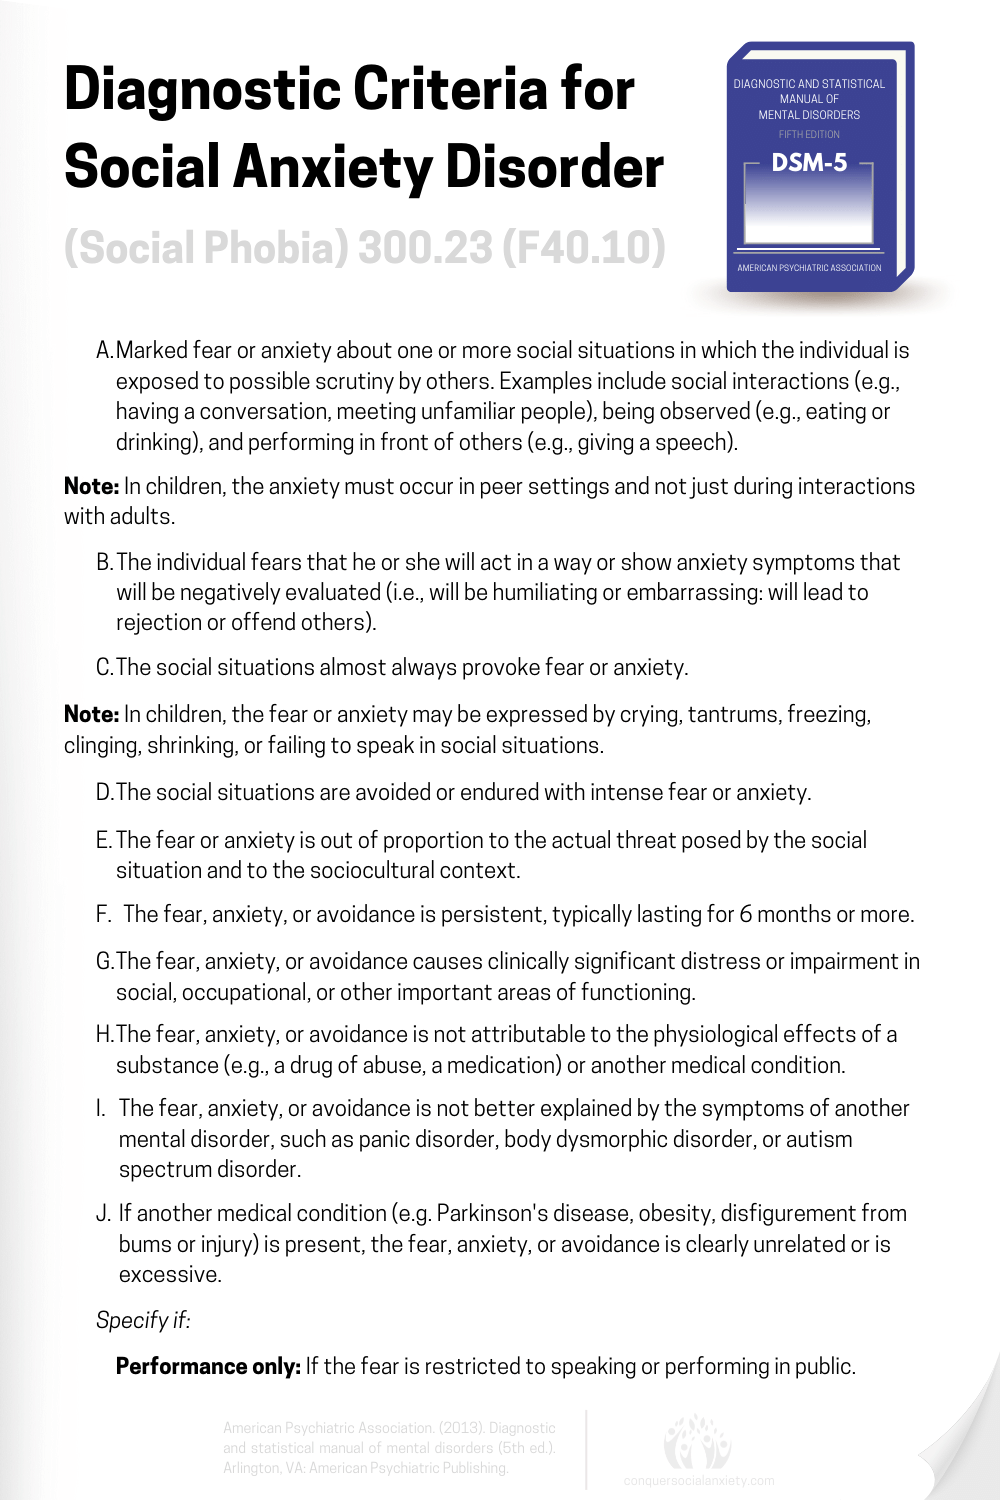 Official DSM-5 diagnostic criteria for the diagnosis of social anxiety disorder (social phobia).